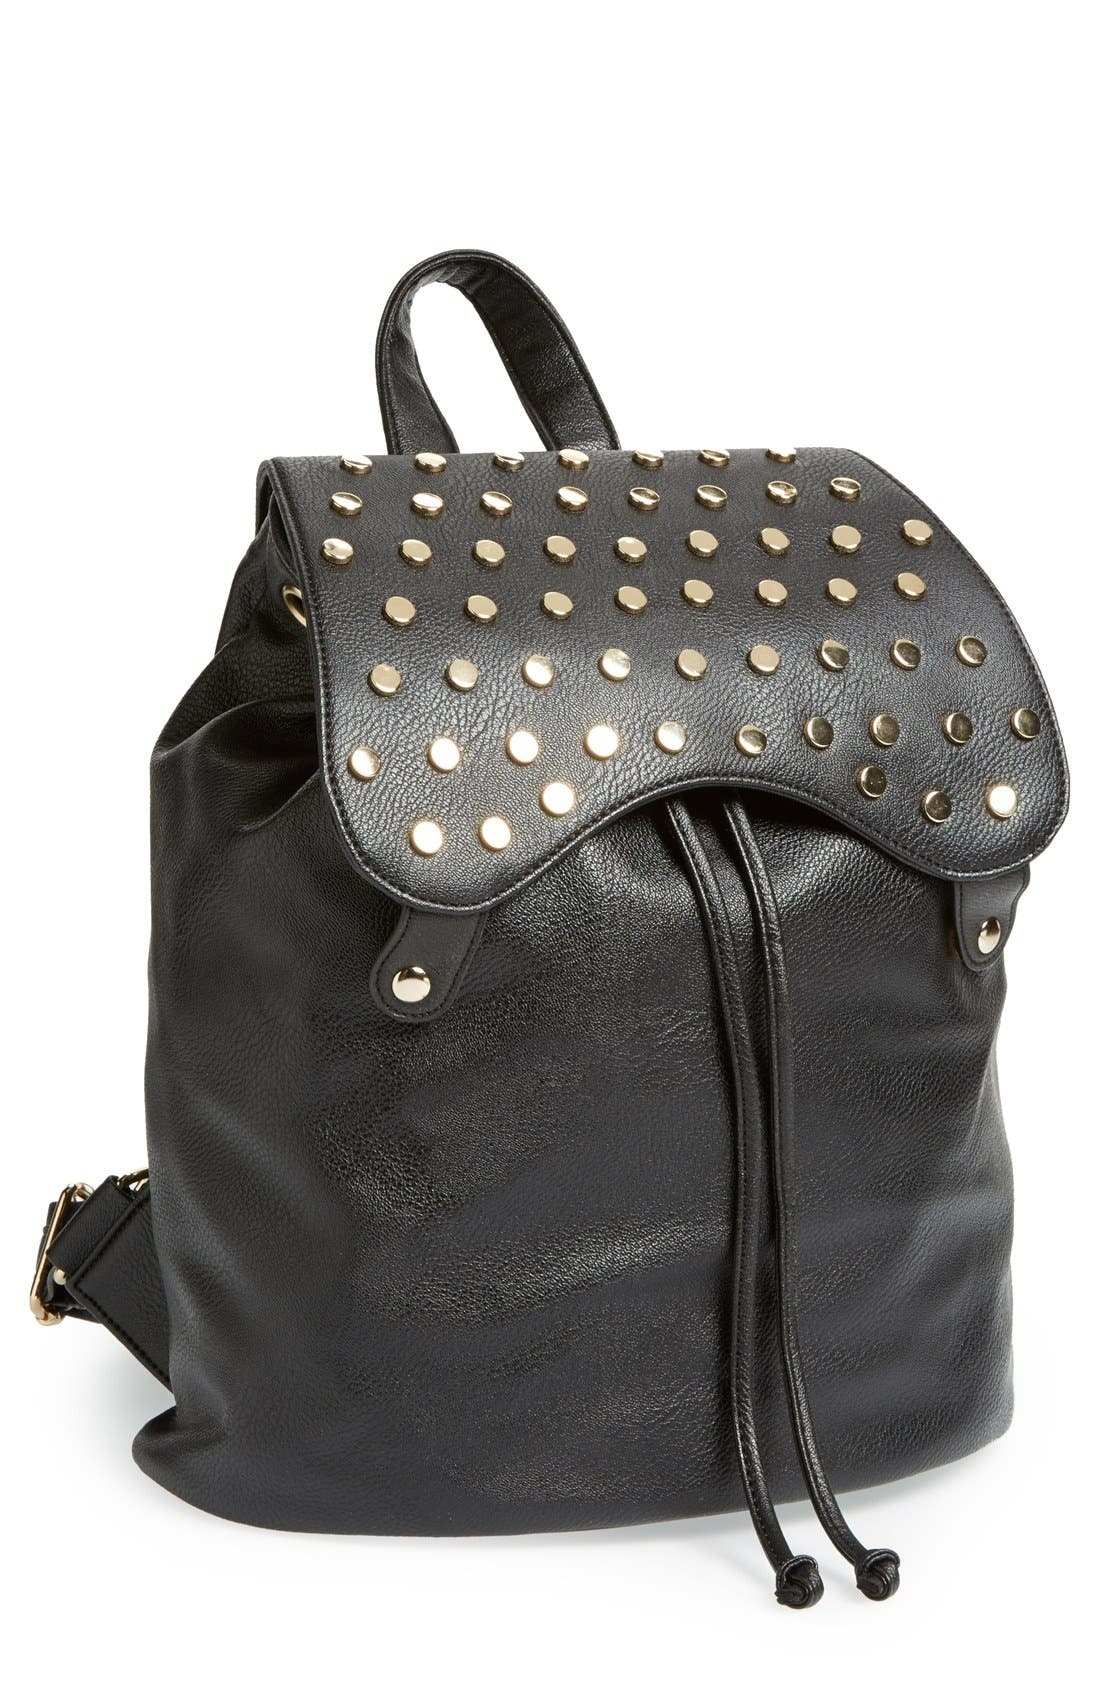 Alternate Image 1 Selected - Sole Society 'Nellie' Studded Faux Leather Backpack